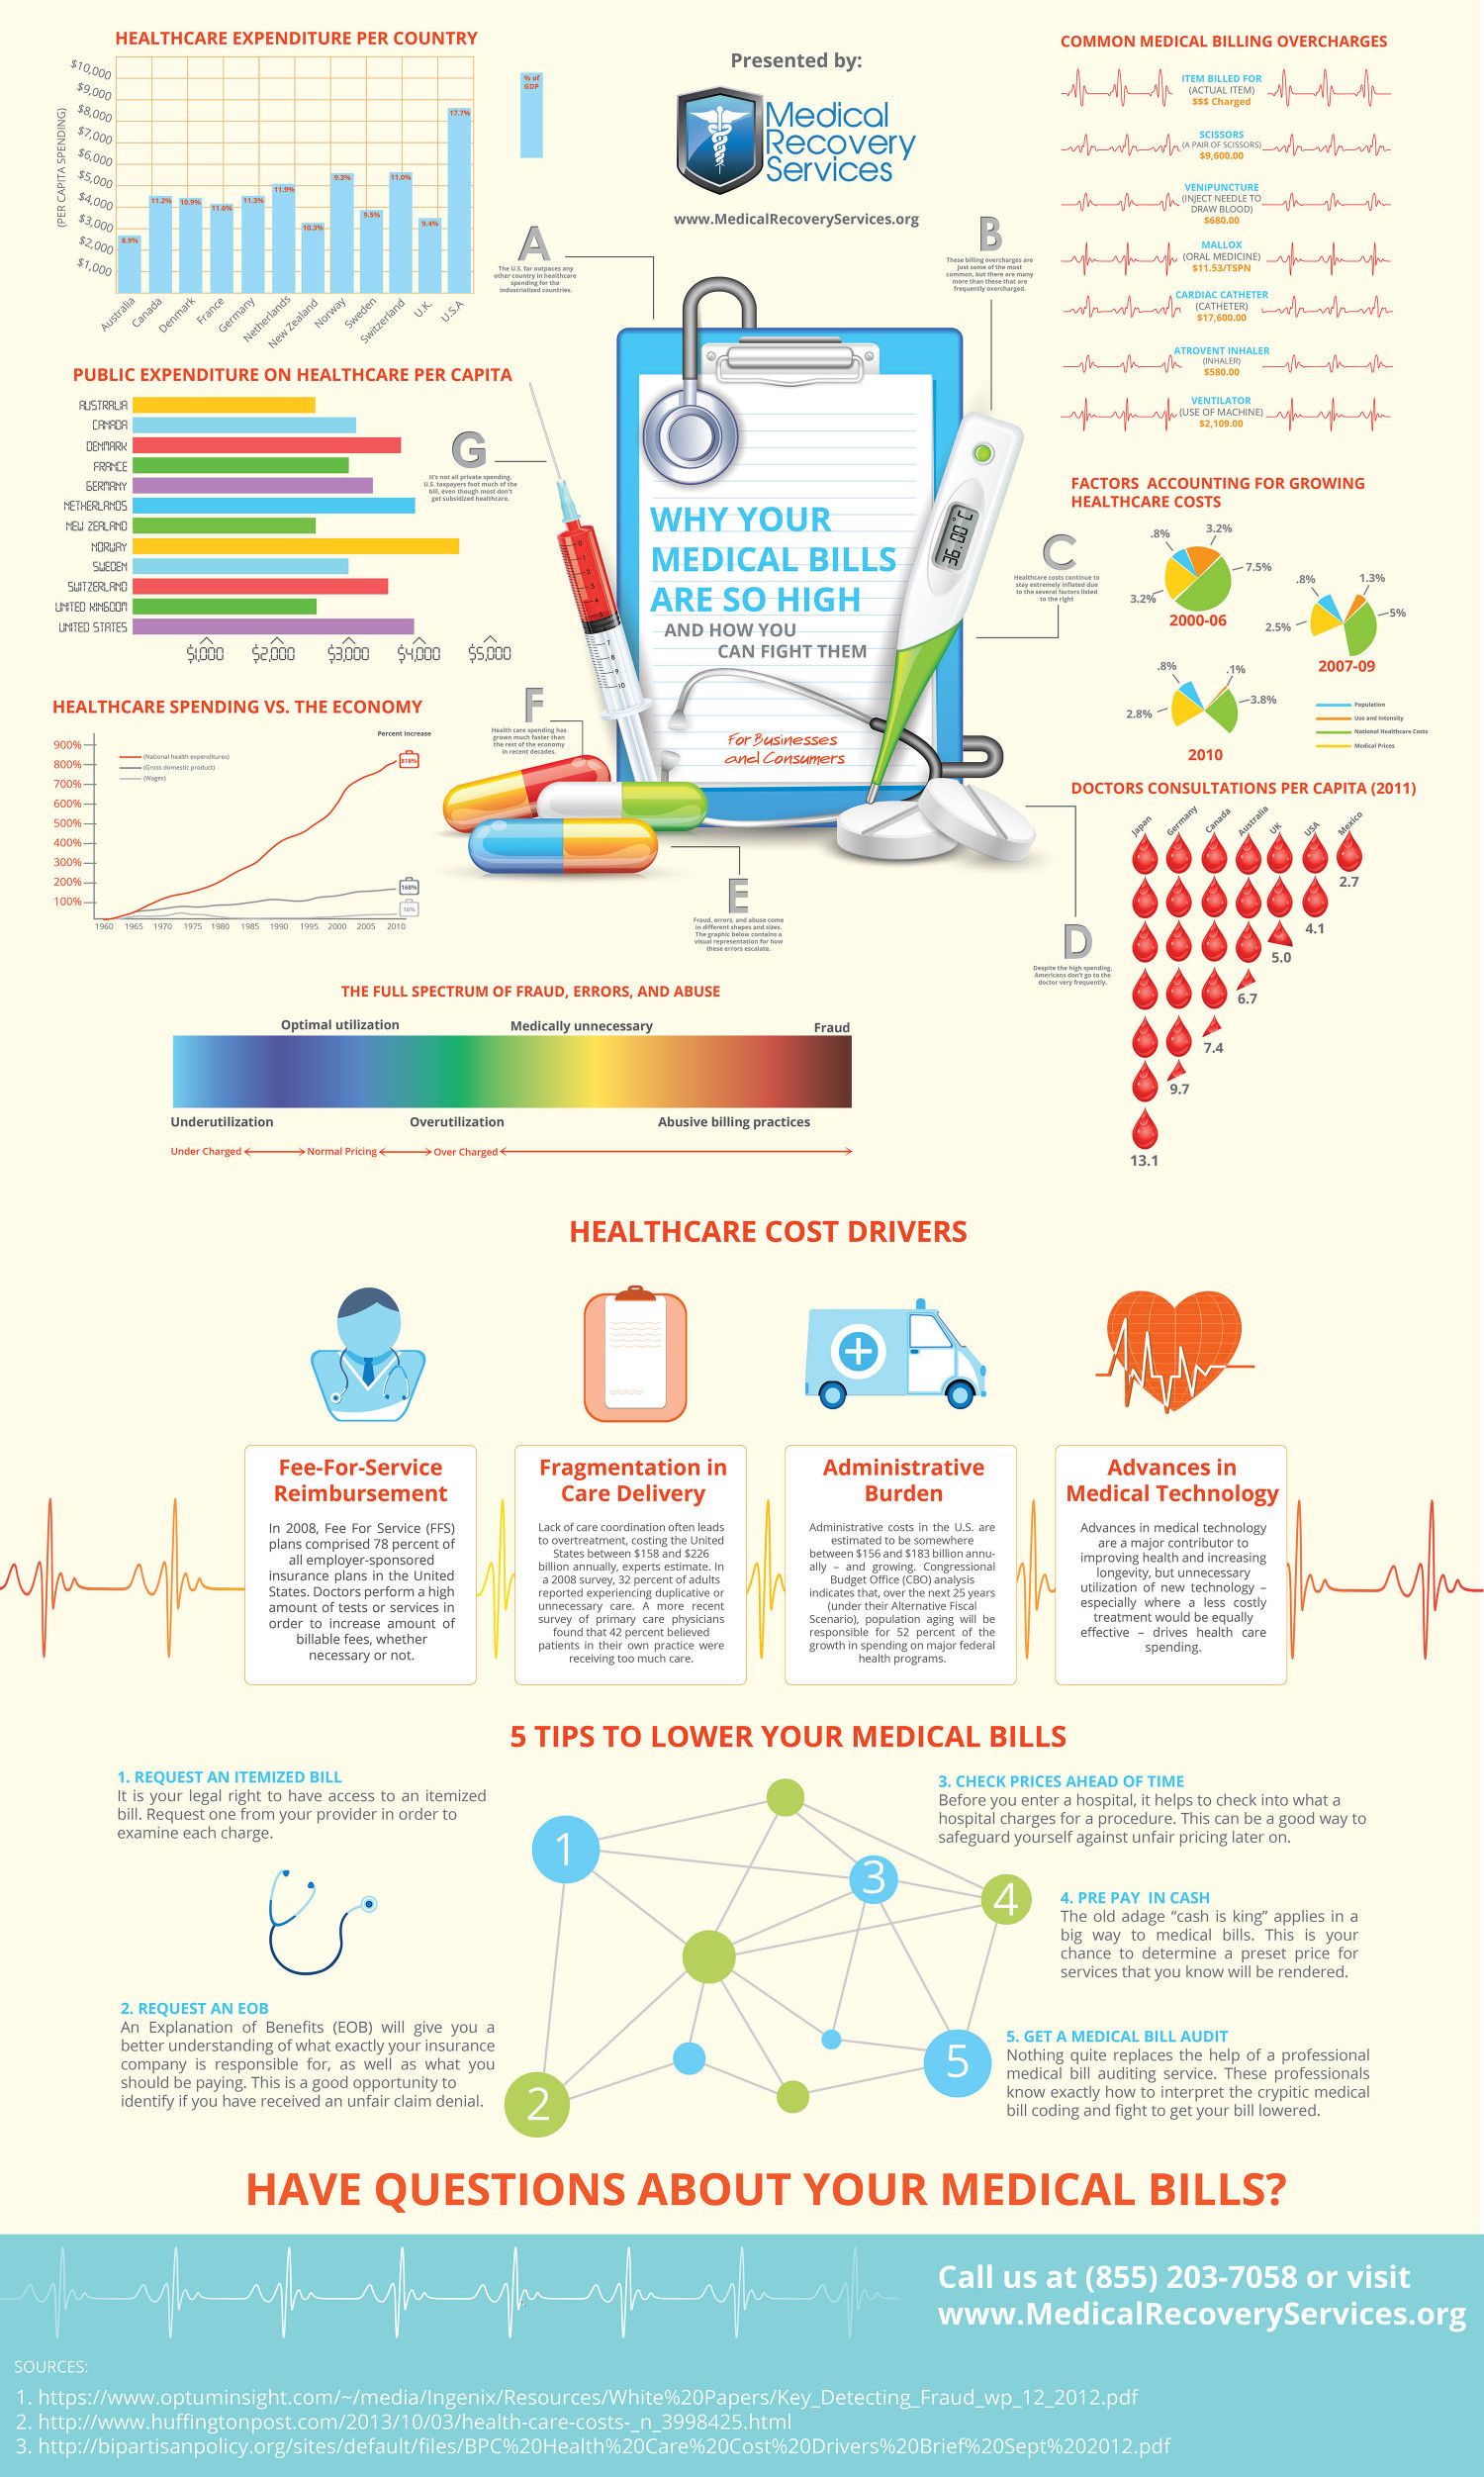 Why Medical Bills Are So High and How You Can Fight Them Infographic